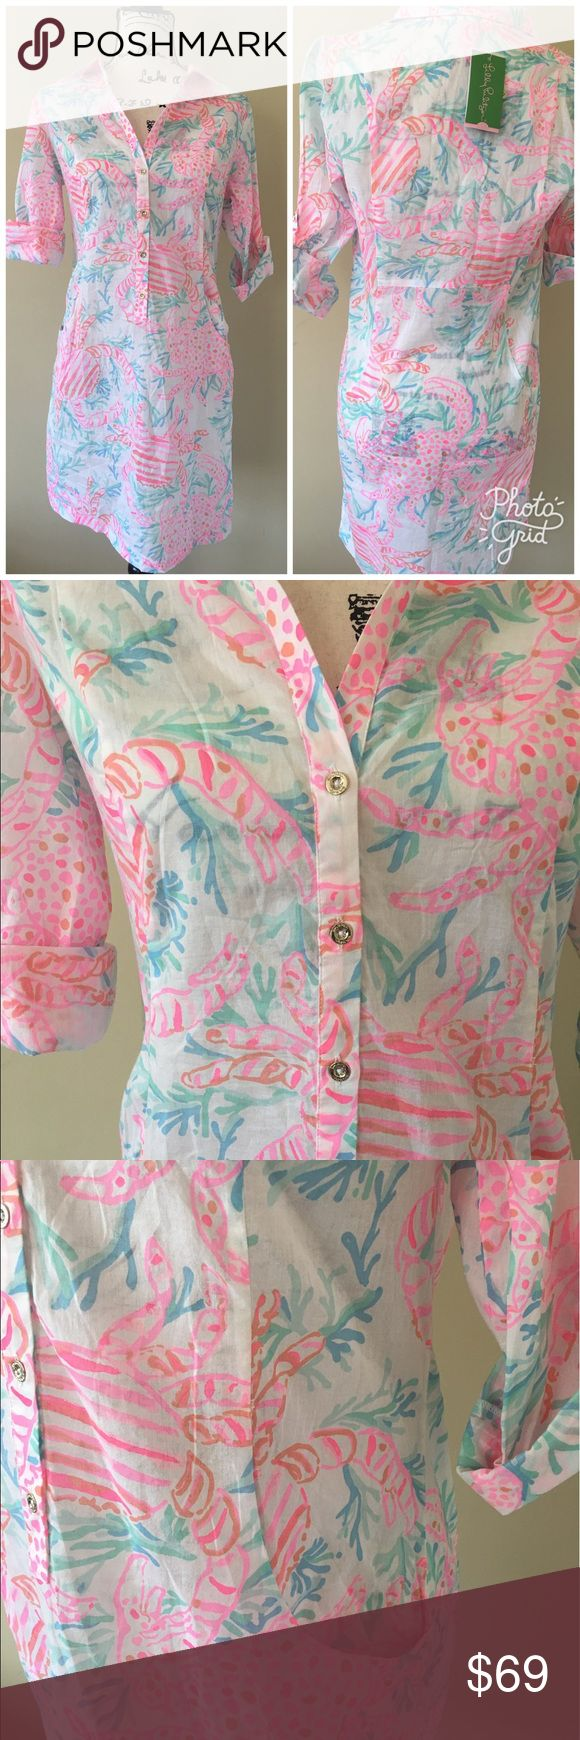 New Lilly Pulitzer Sanibel swim cover up dress Brand new with tags  Lilly Pulitzer  Sanibel tunic dress  Swim cover up  Ladies size small   White semi sheer cotton with whimsical crab print.  Retail $118 Lilly Pulitzer Swim Coverups